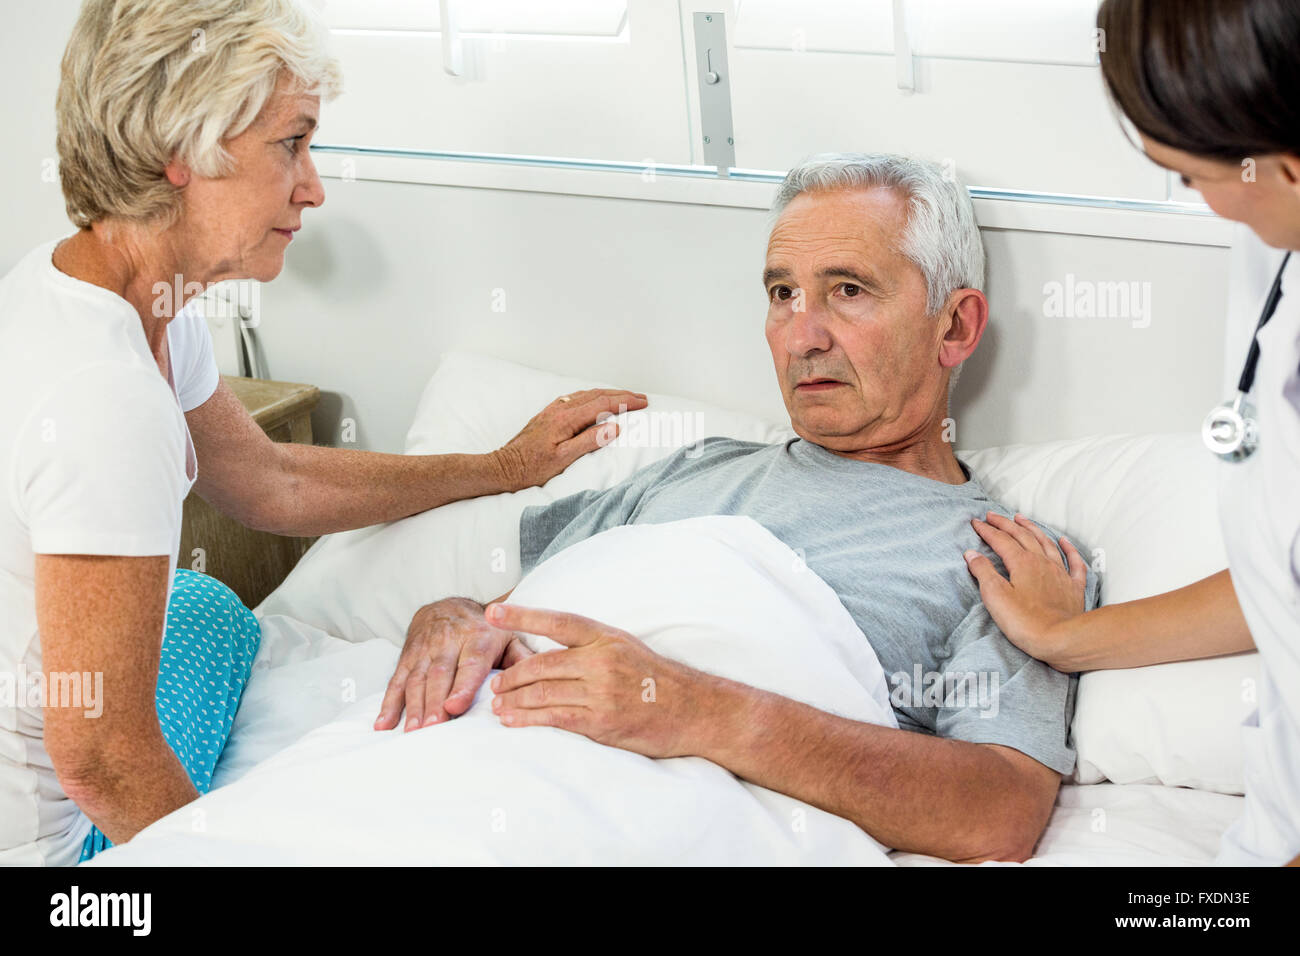 Caregiver and woman comforting senior man - Stock Image